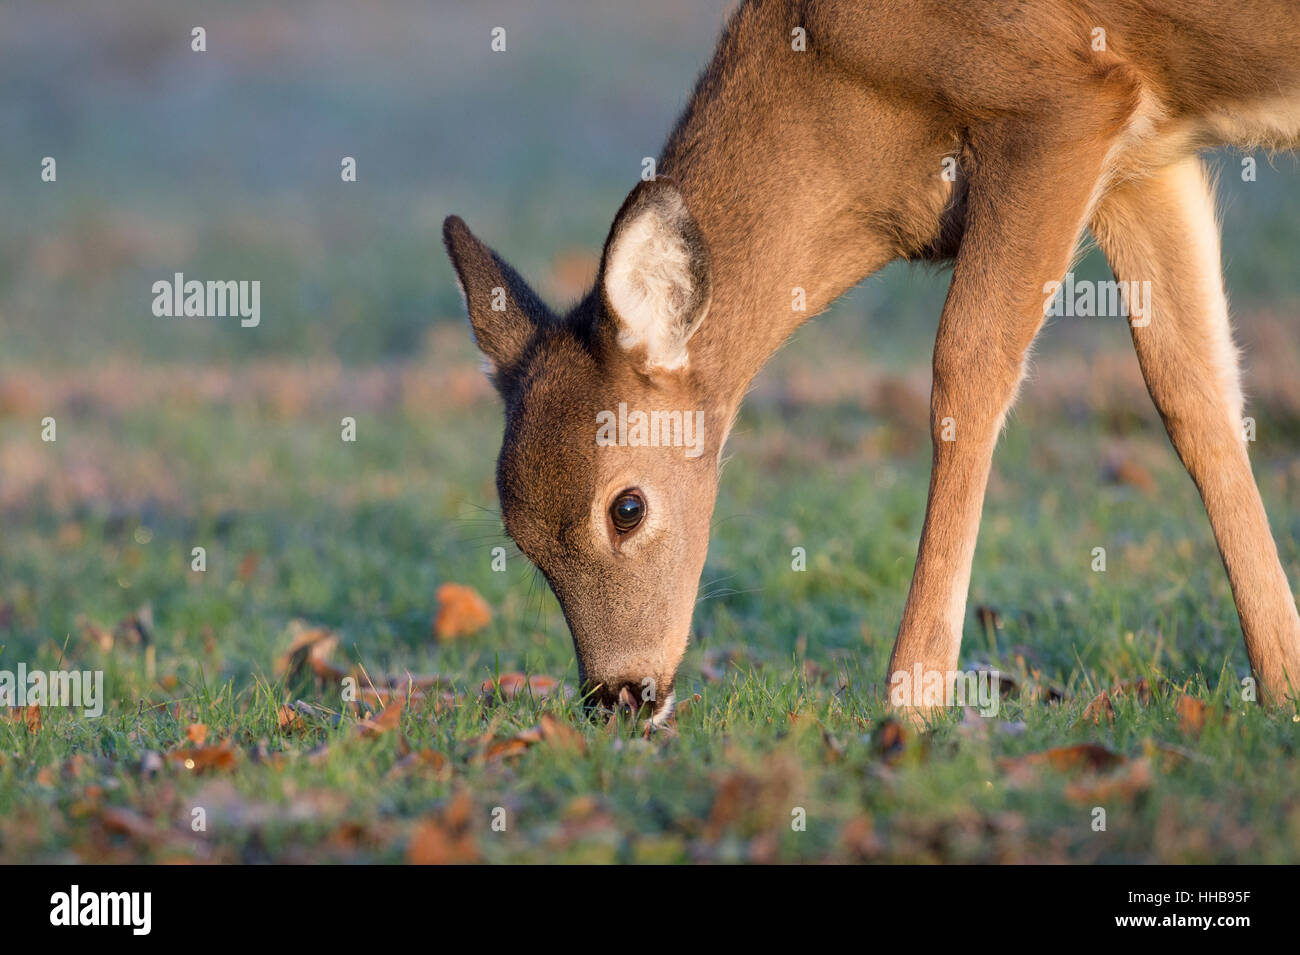 A yearling Whitetail Deer feeds in a small field just as the morning sun shines on its fur. - Stock Image